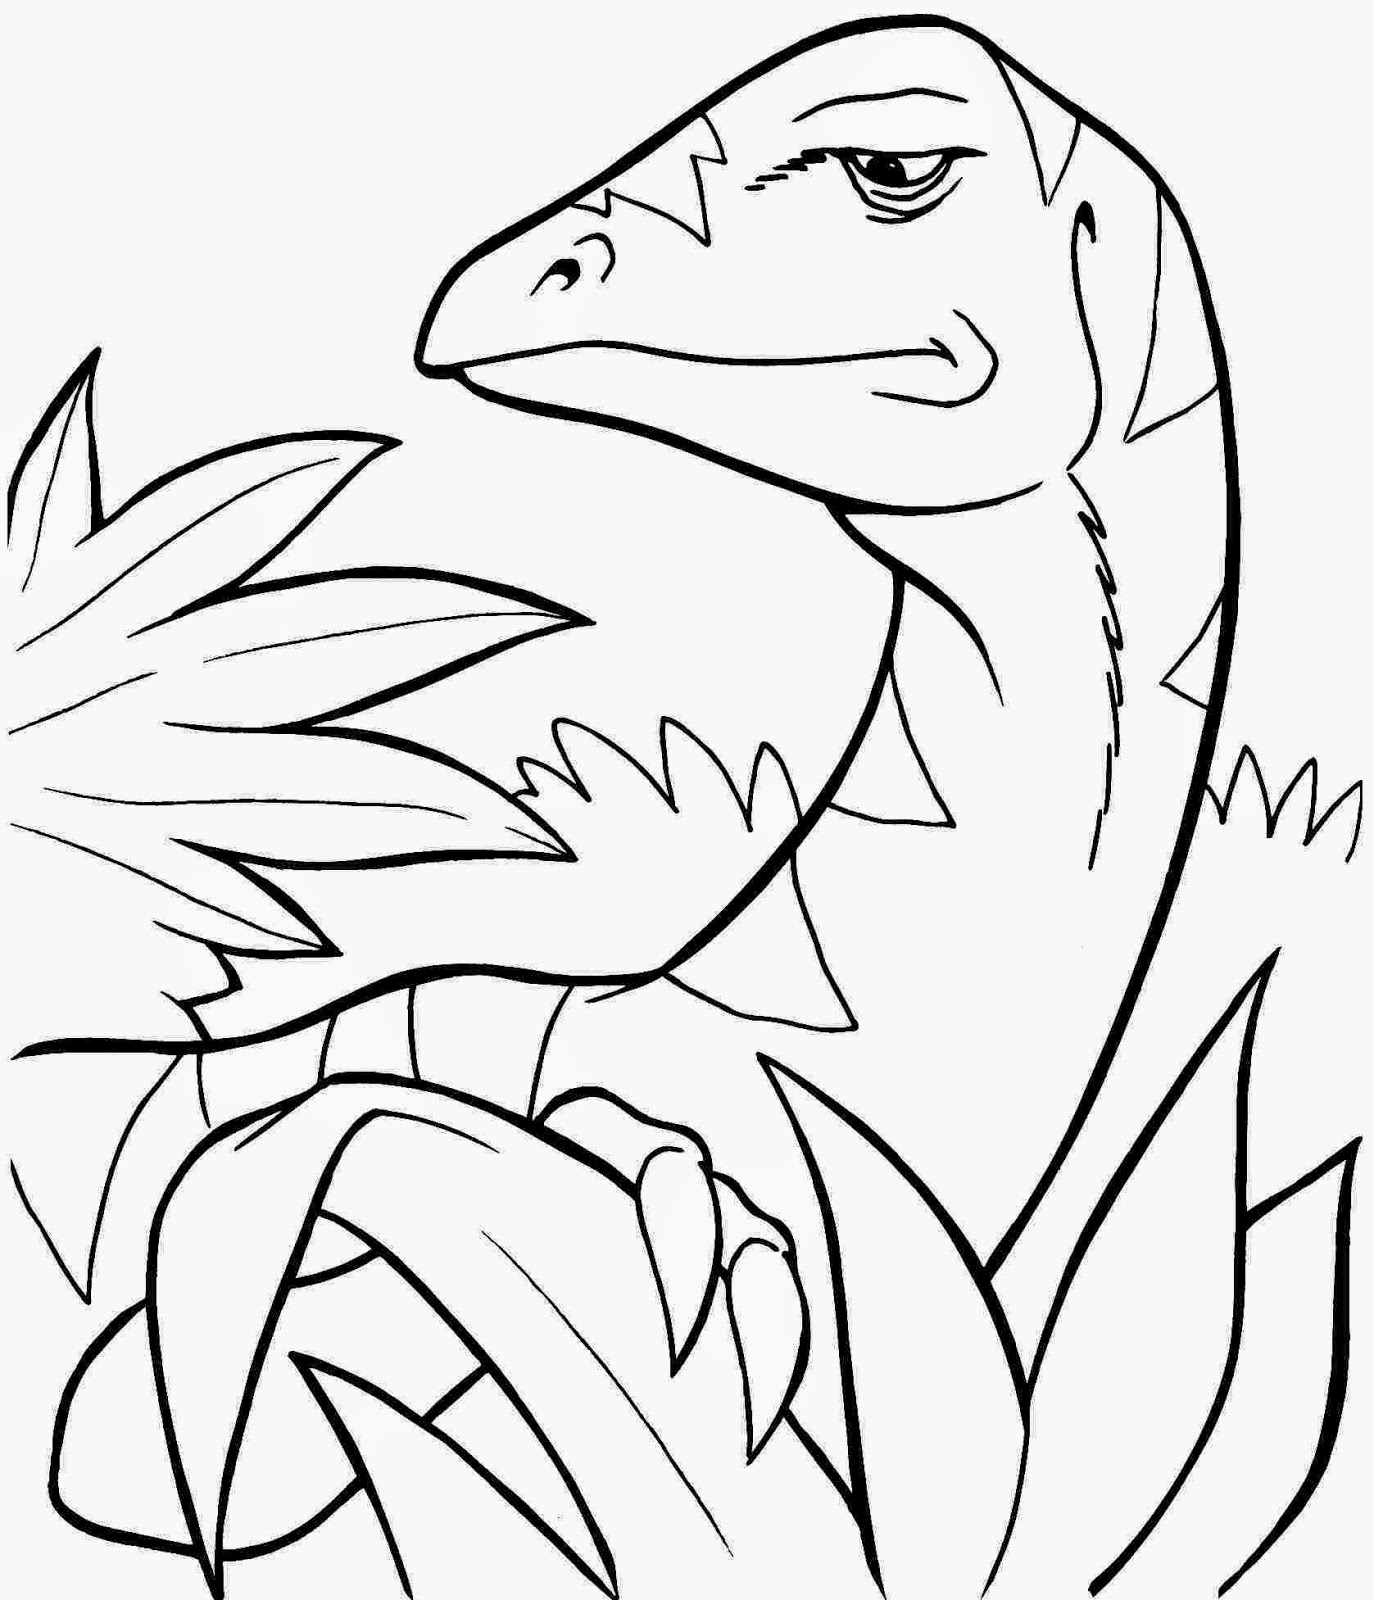 dinosaur pictures to colour in dinosaurs coloring pages collection free coloring sheets dinosaur to in colour pictures